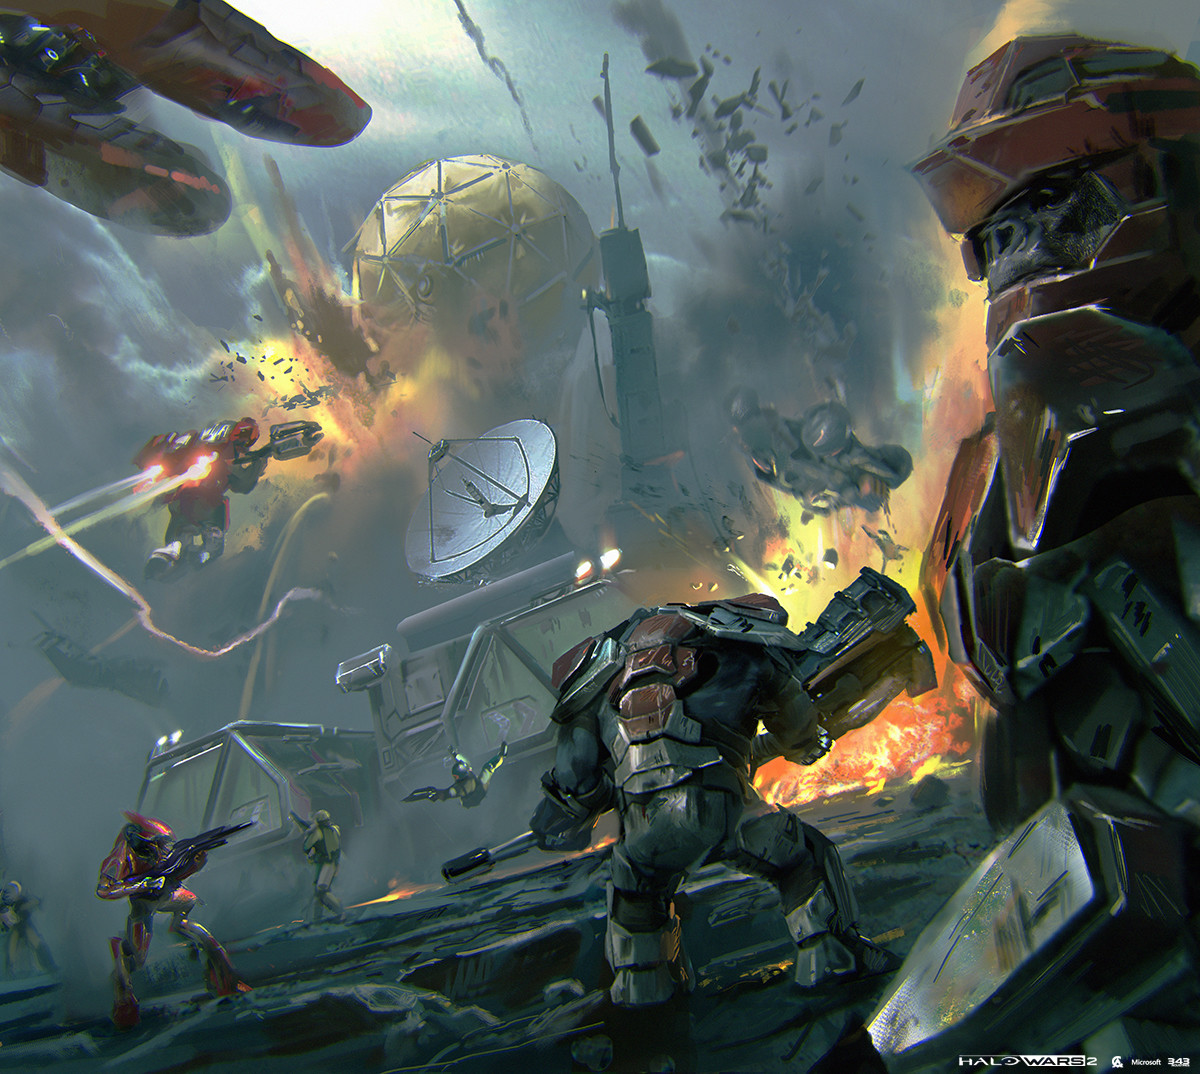 Halo Wars 2 Concept Art by Yap Kun Rong